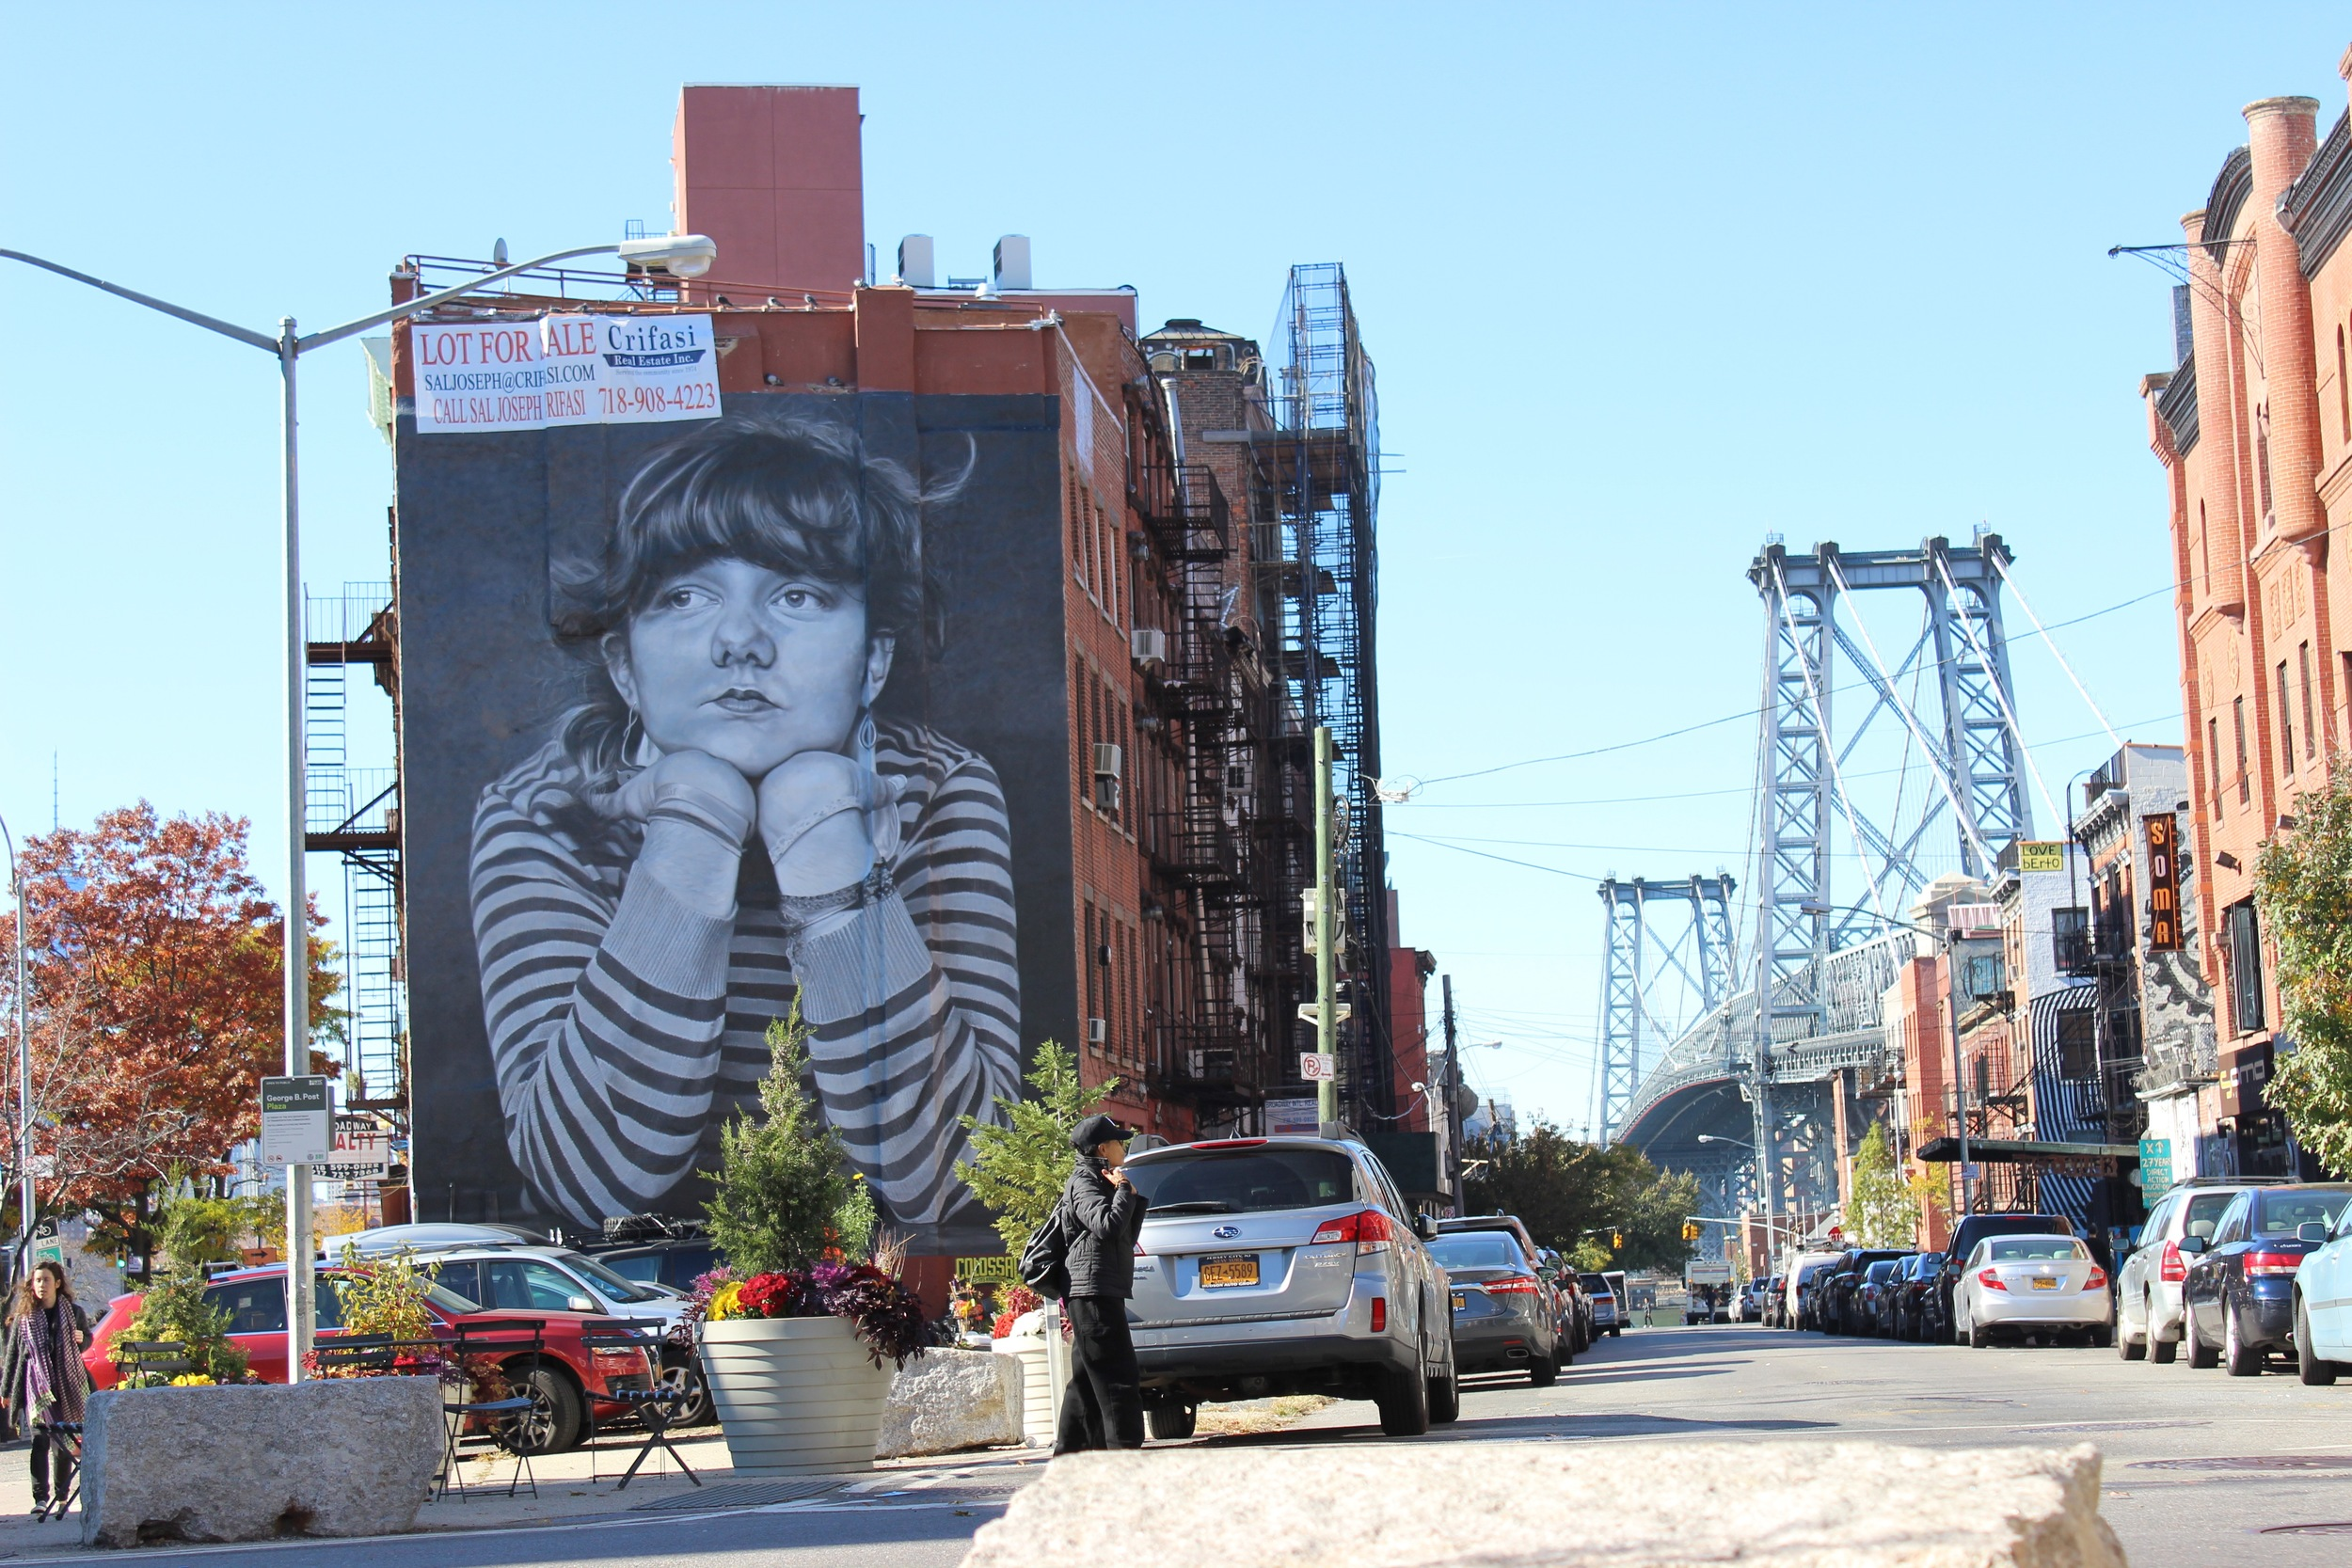 Williamsburg, Brooklyn.